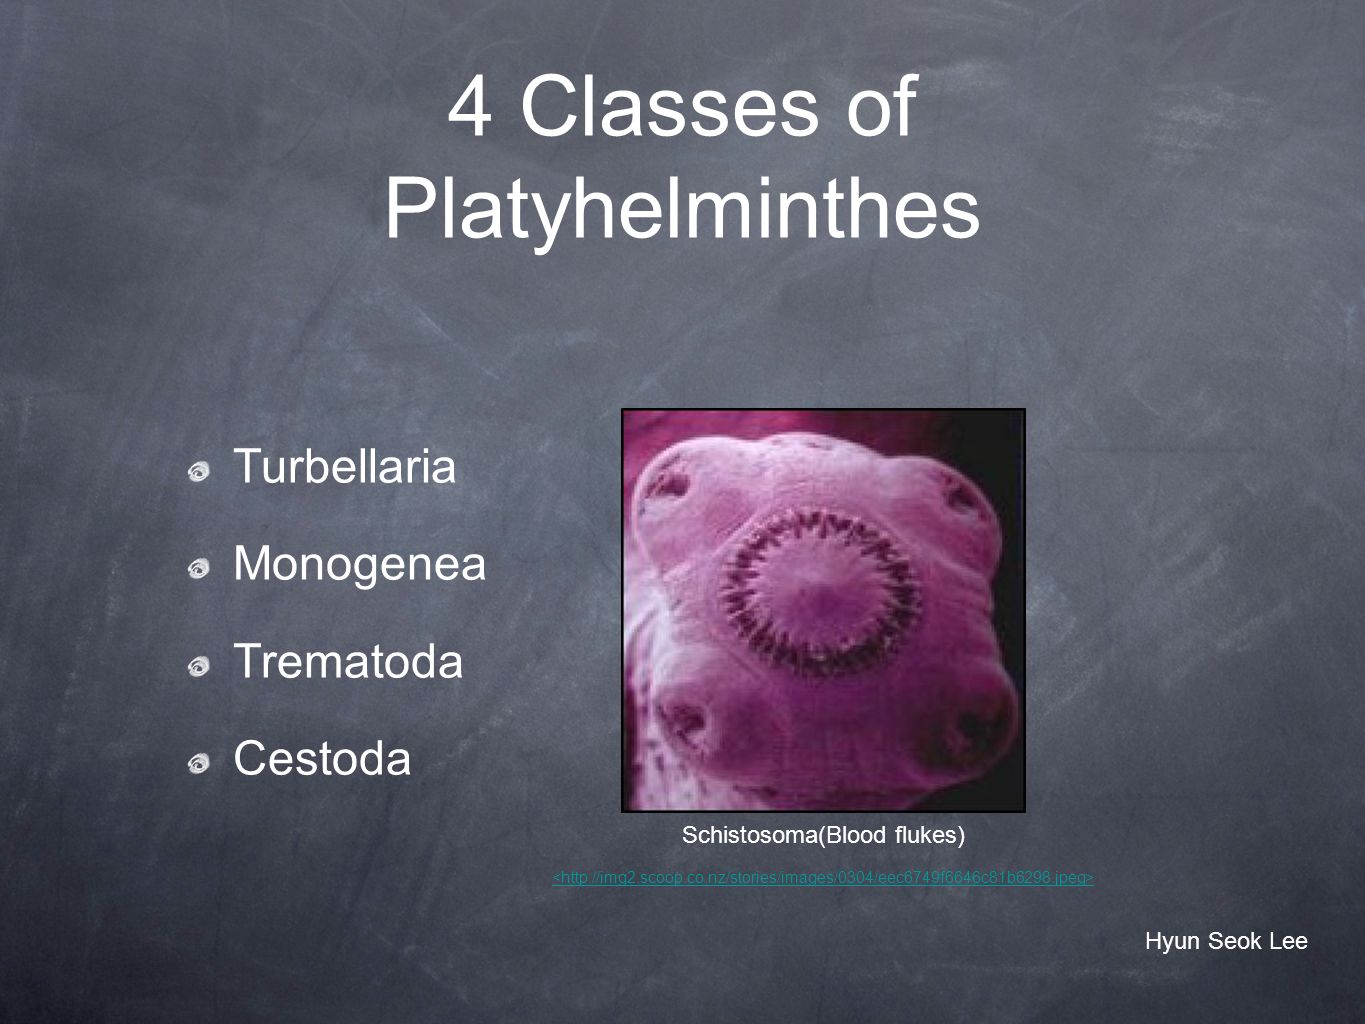 4 Classes of Platyhelminthes